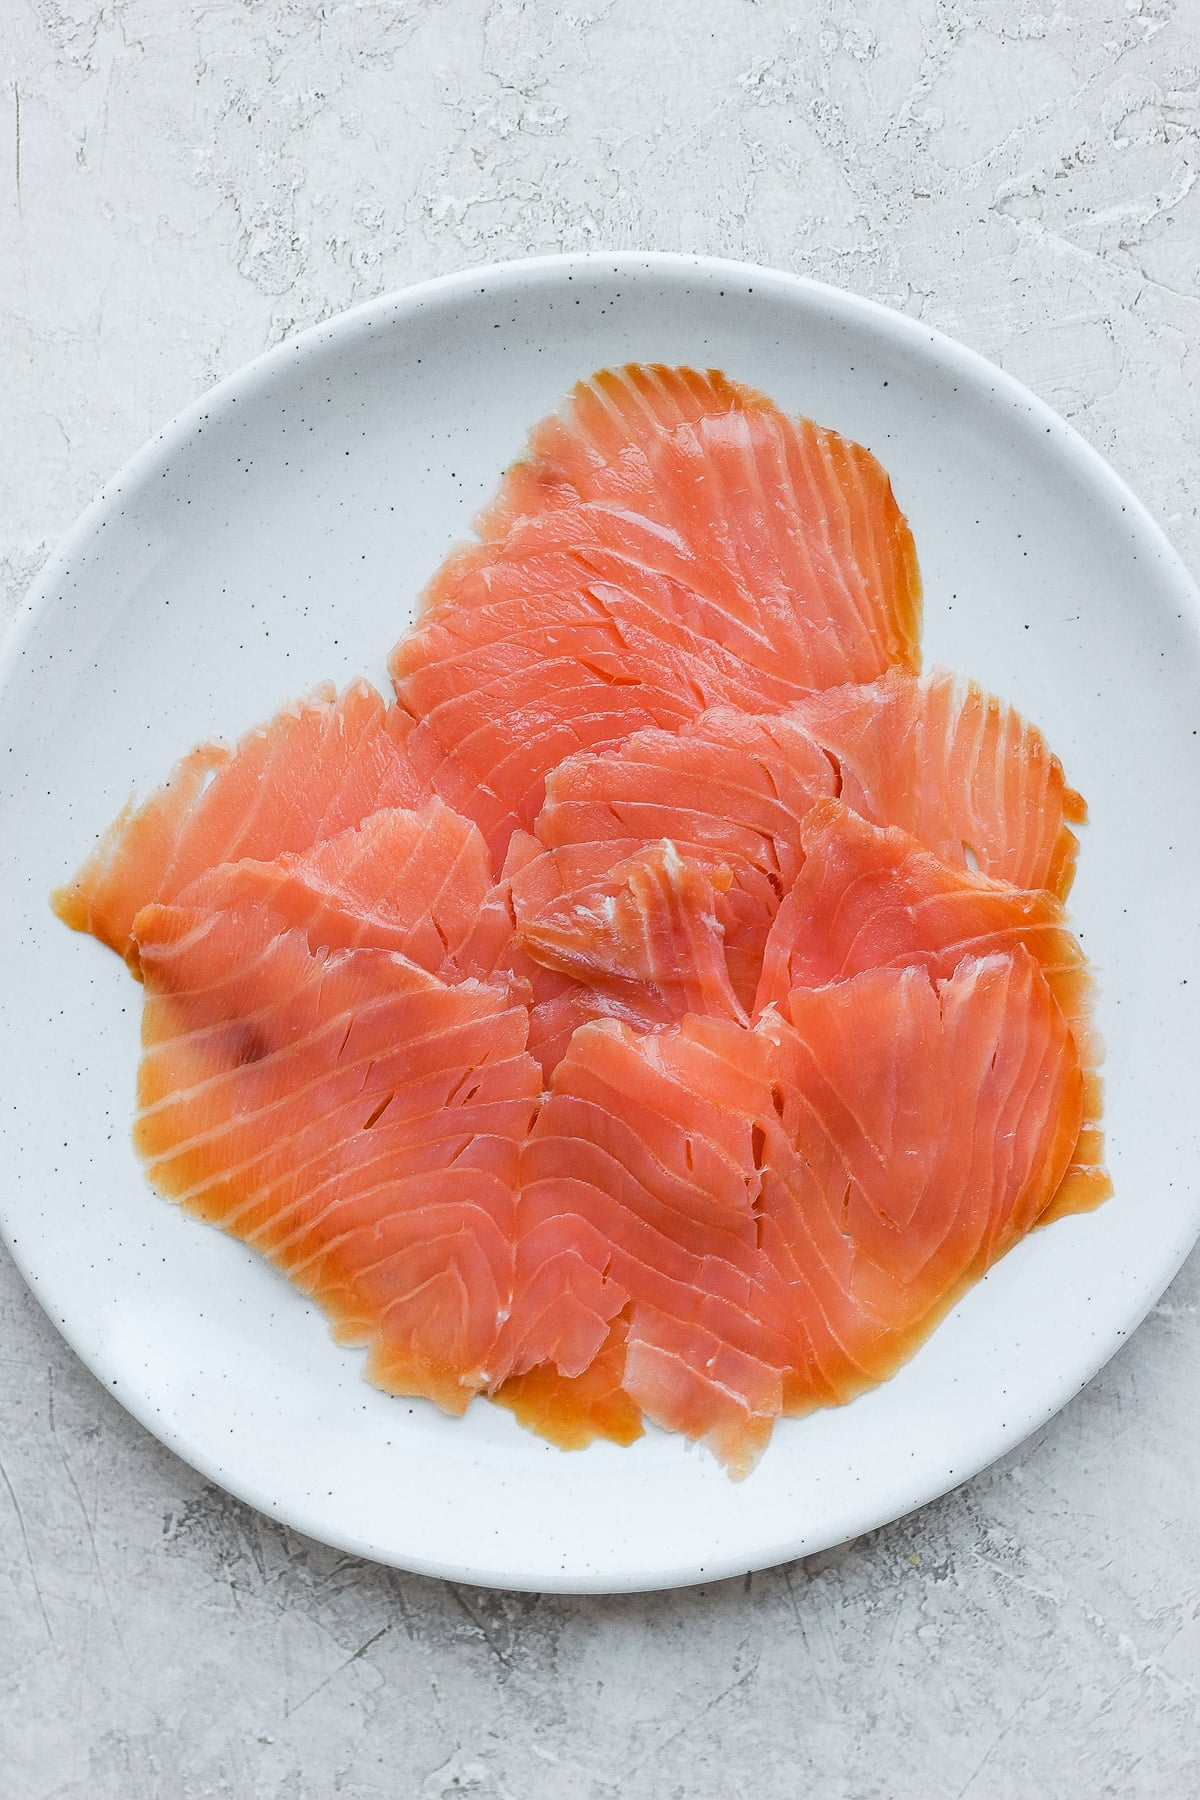 Plate of lox salmon.